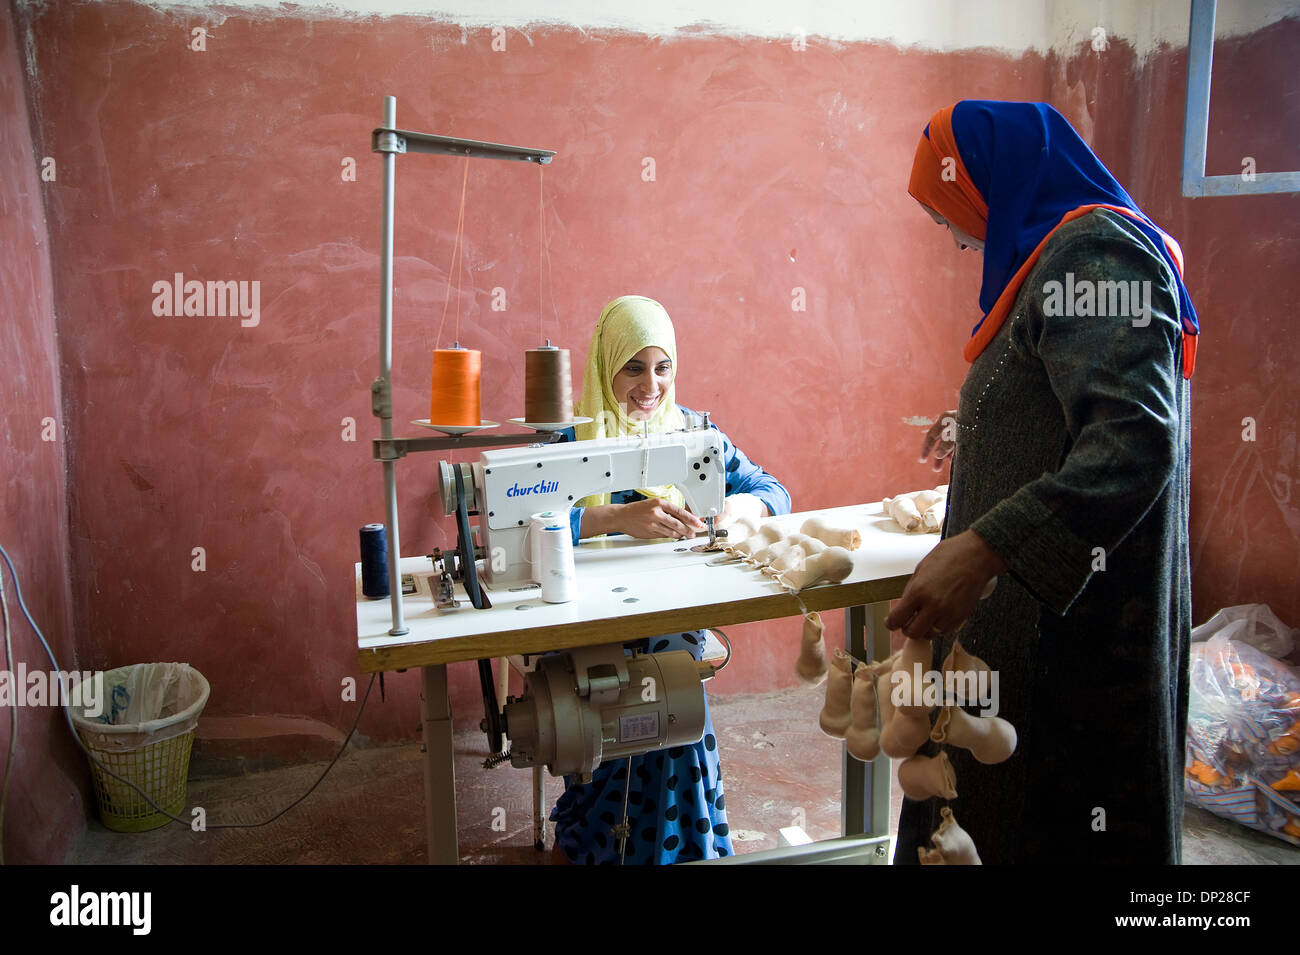 Bilbeis, Egypt: Young Egyptian women working as a seamstress at home for Sekem company in order to have a little income - Stock Image